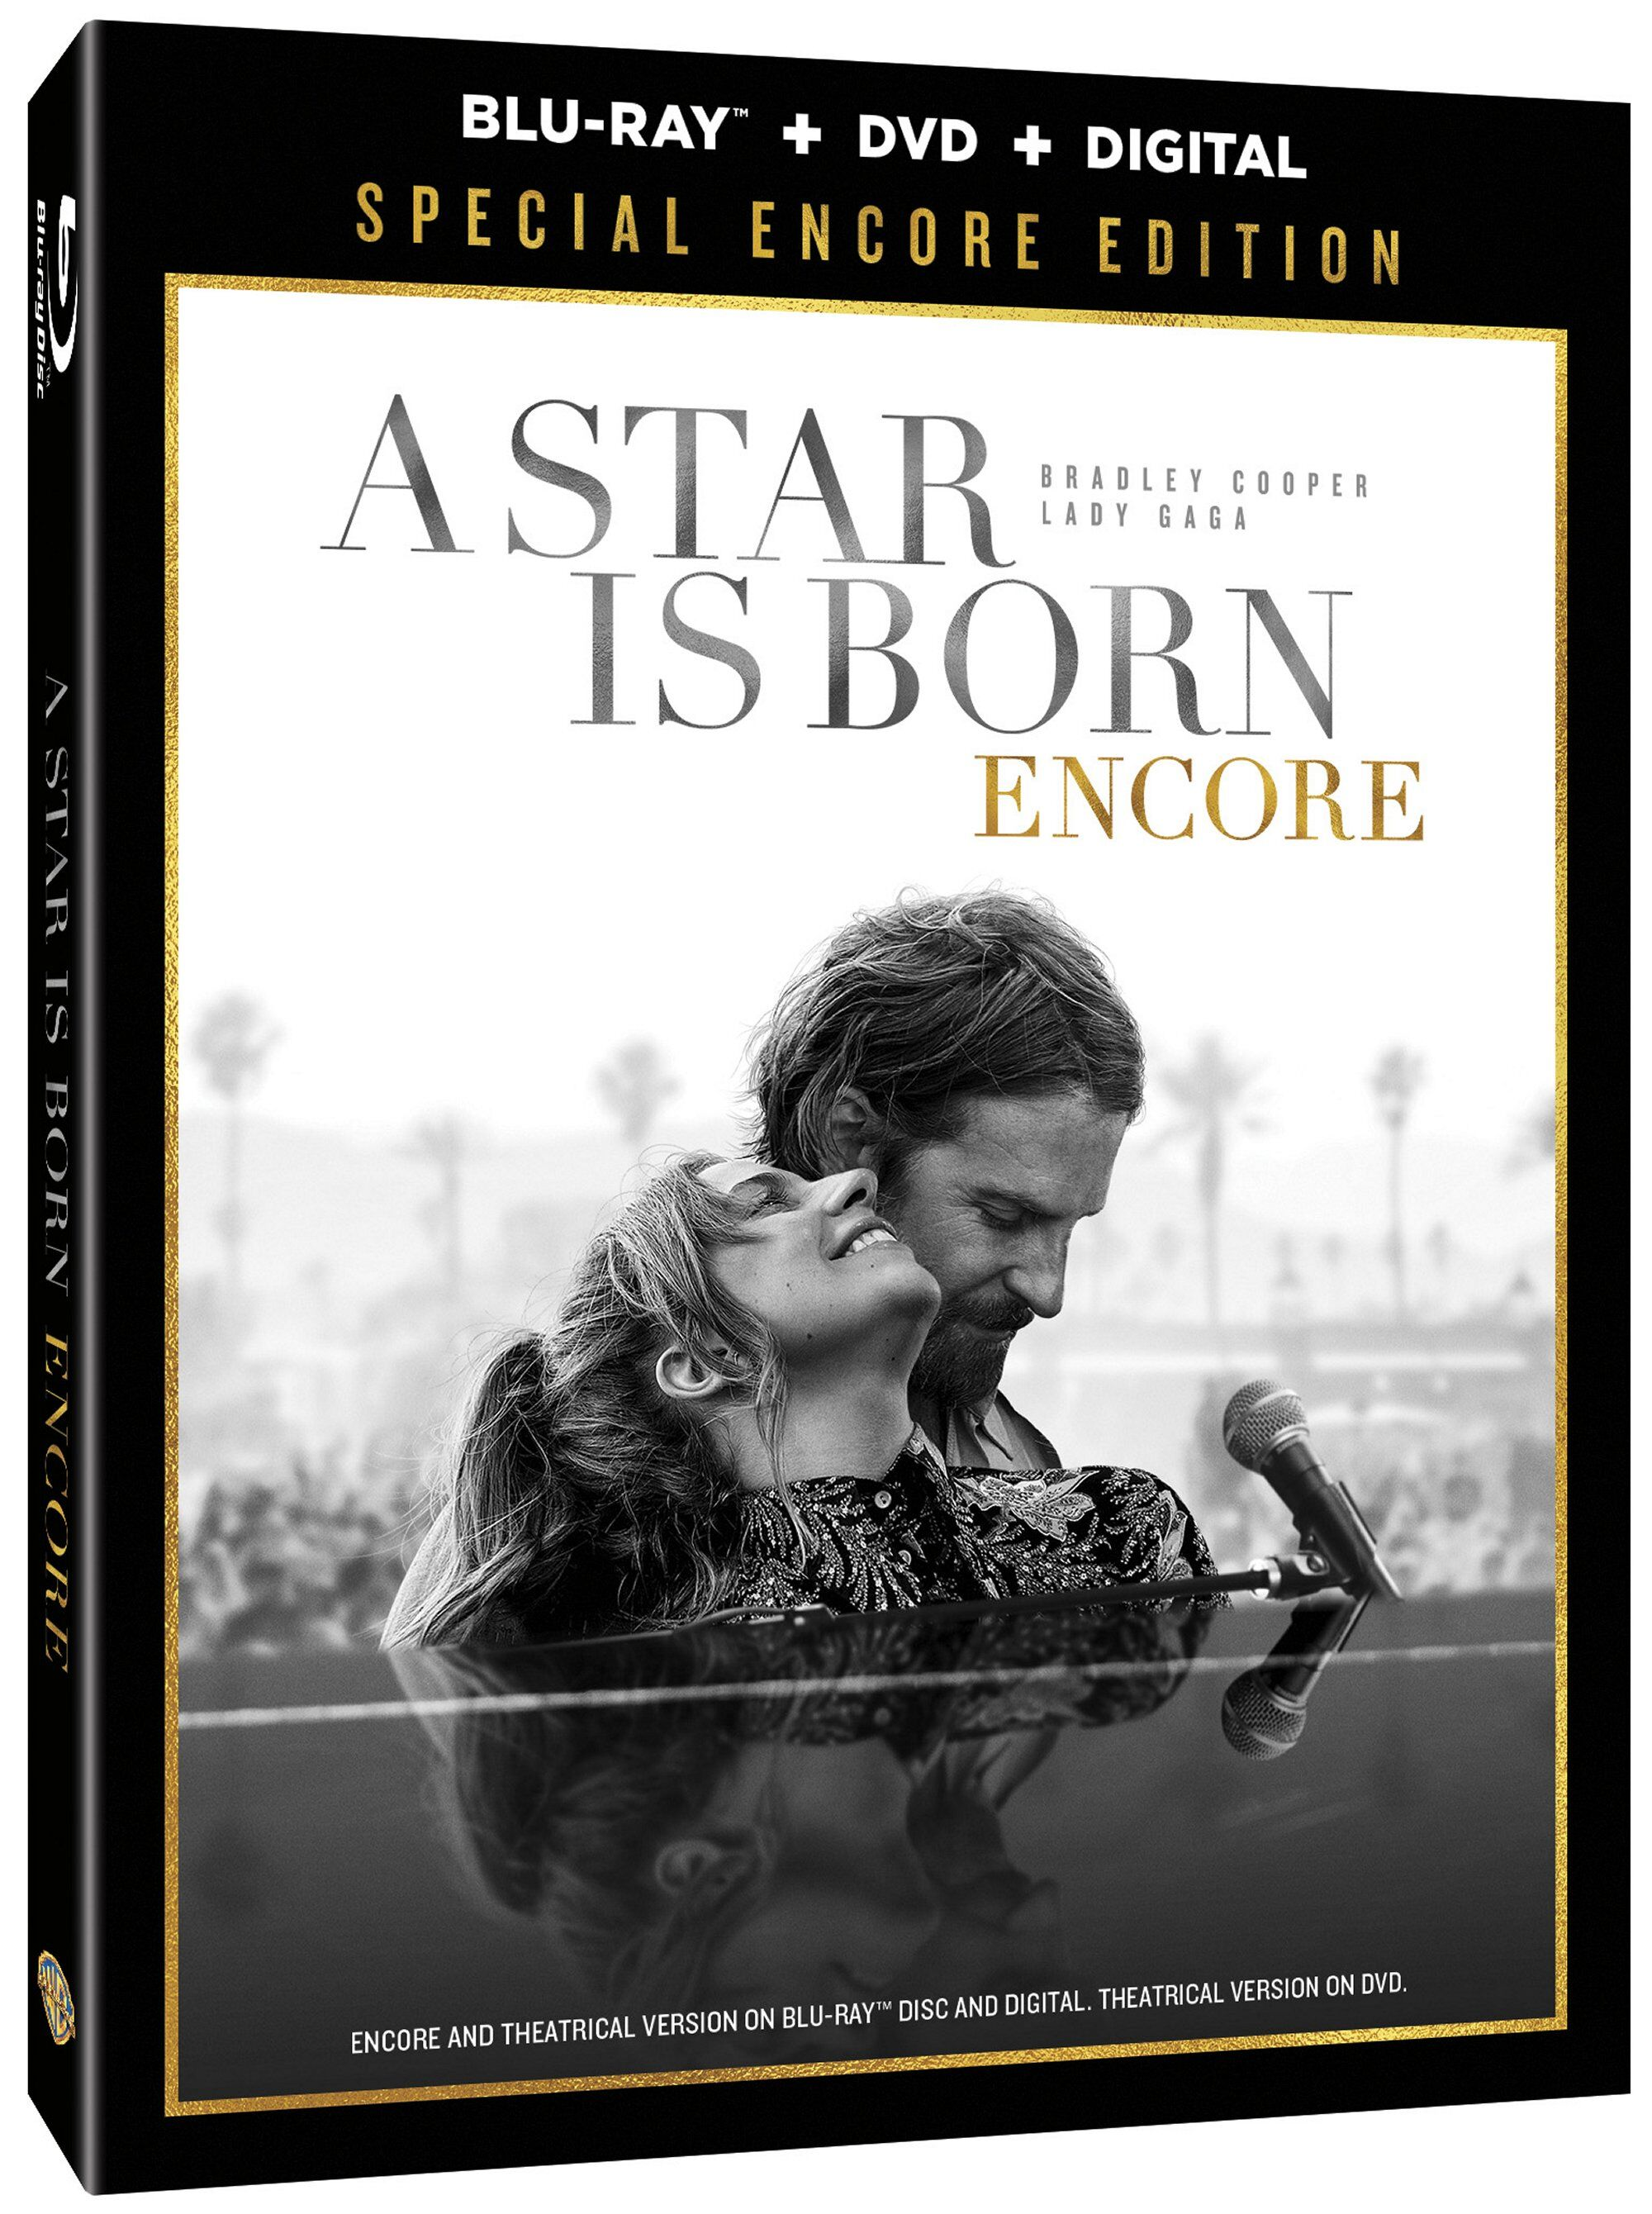 A Star is Born Blu-ray Review